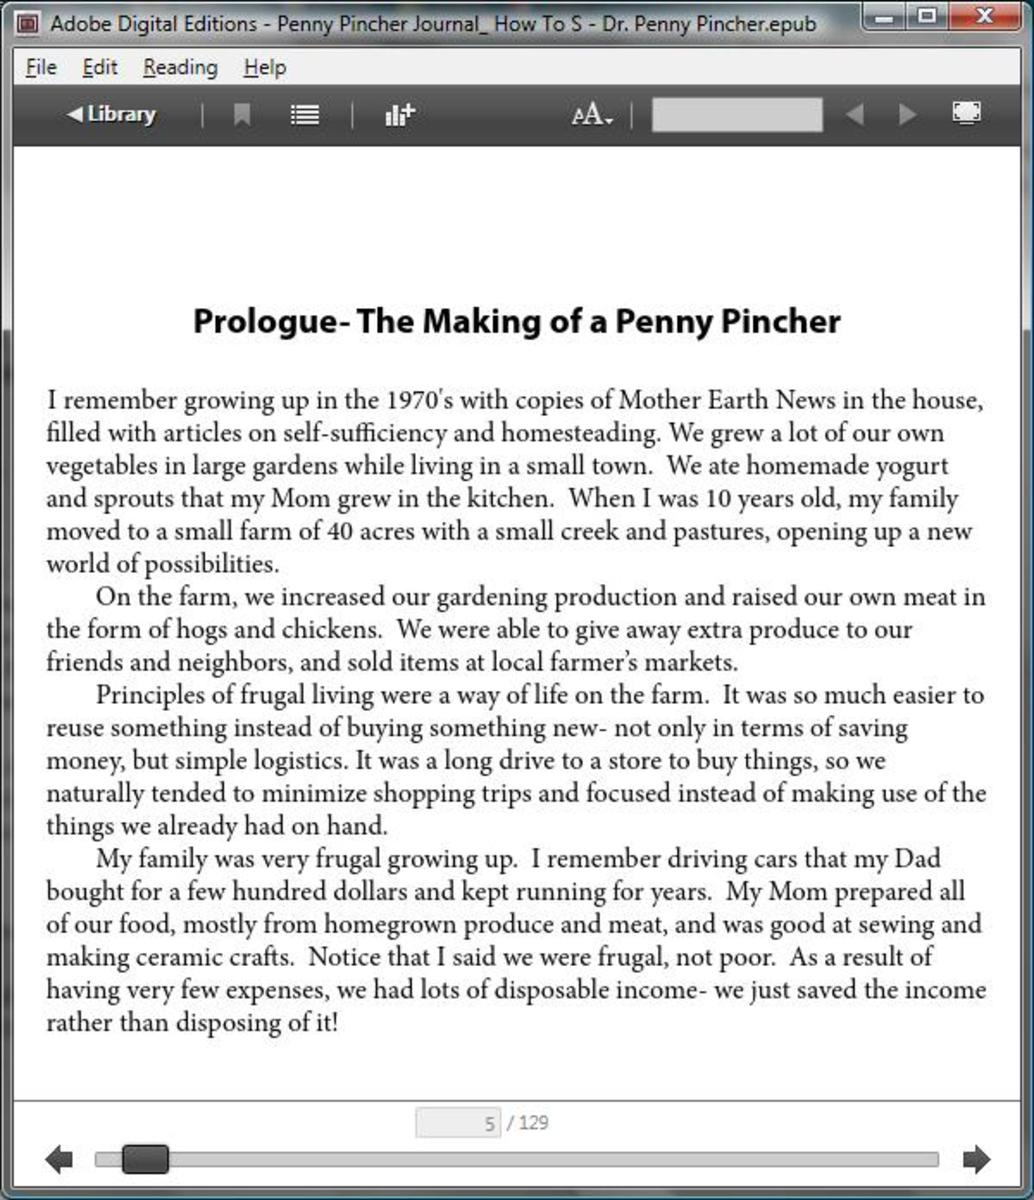 How Will Your eBook Look?  Preview epub Format in Adobe Digital Editions.